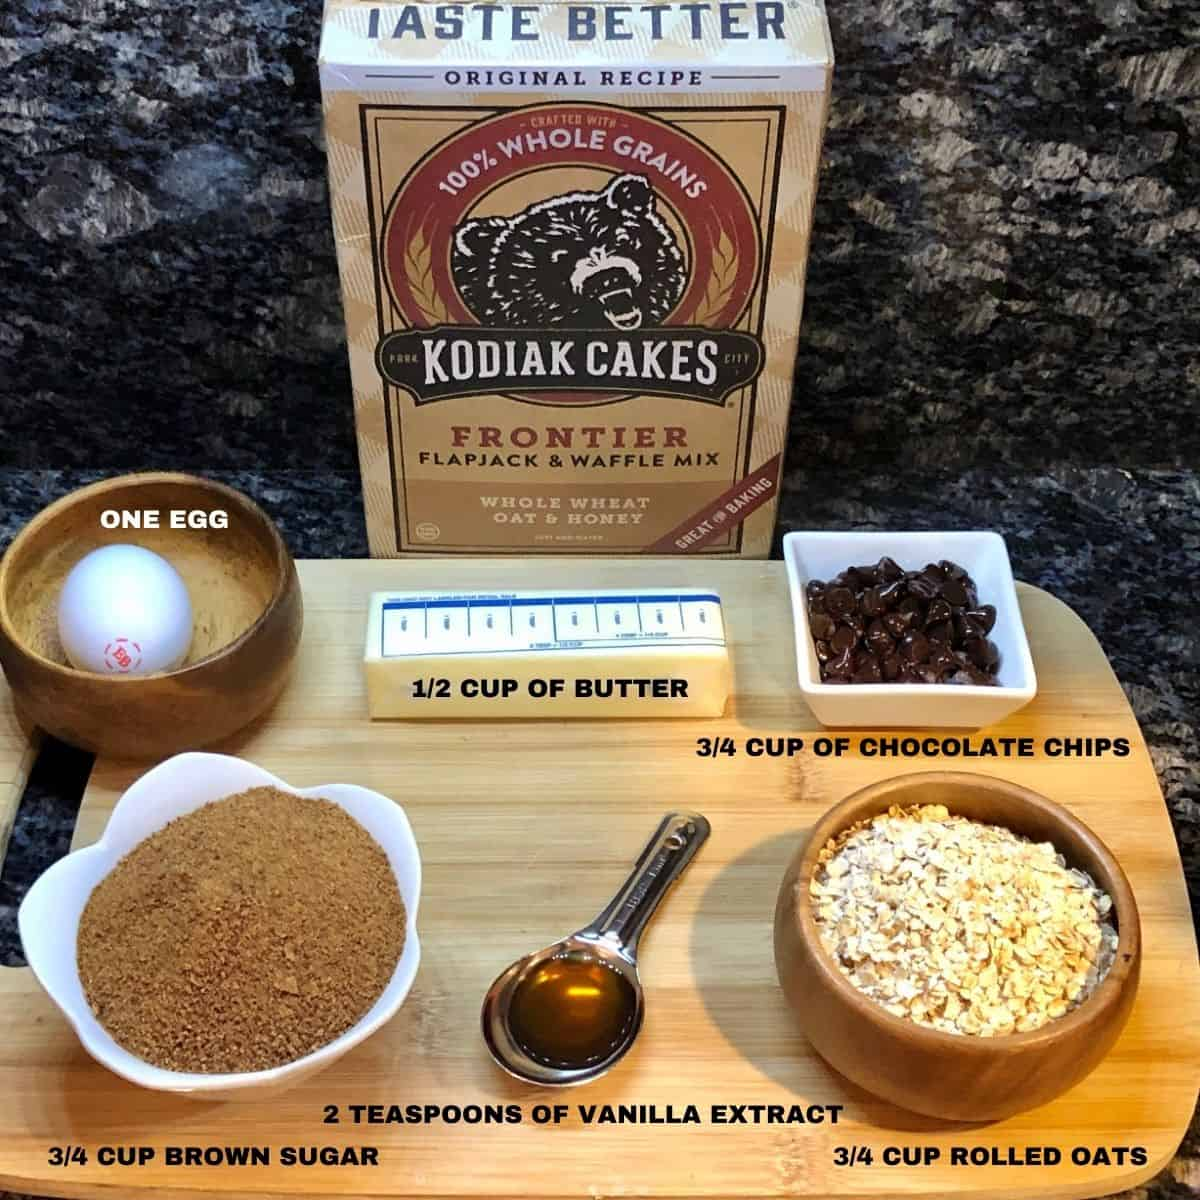 Oatmeal Cookie Ingredients Egg Butter Chocolate chips brown sugar vanilla extract and oats displayed on a cutting board